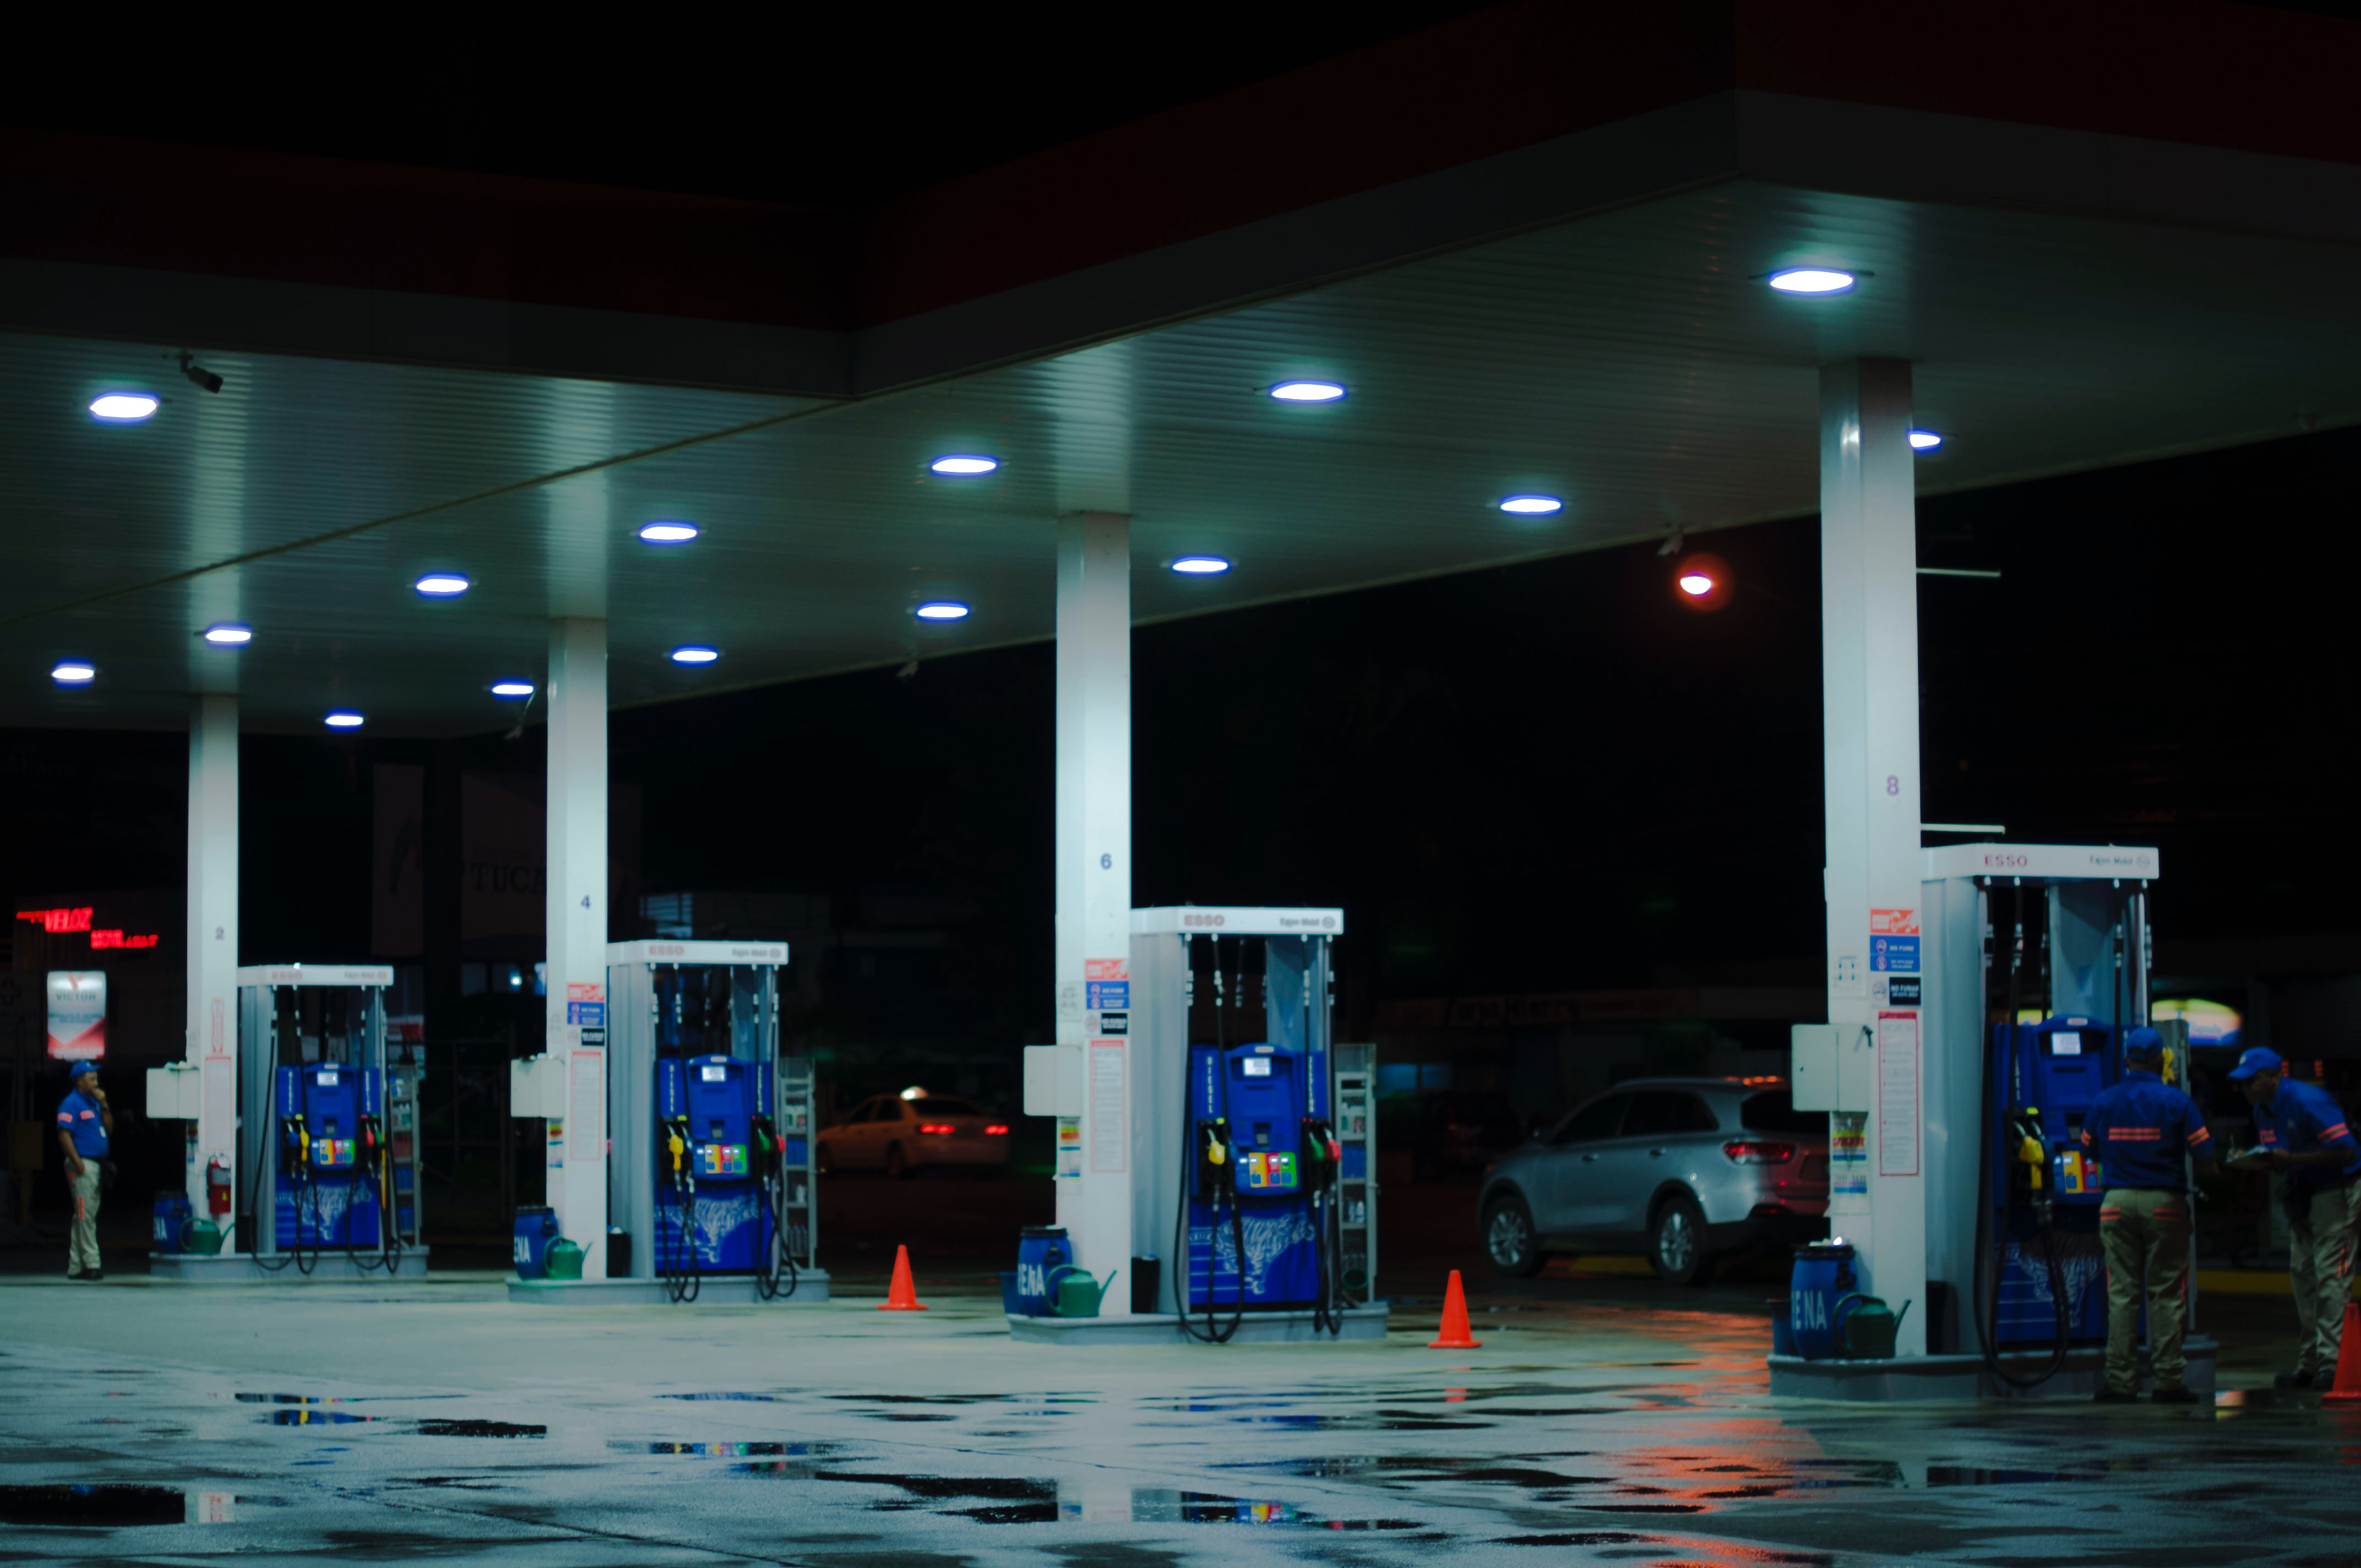 Gas Prices Miami >> Crude awakening: Prices are surging at gas stations